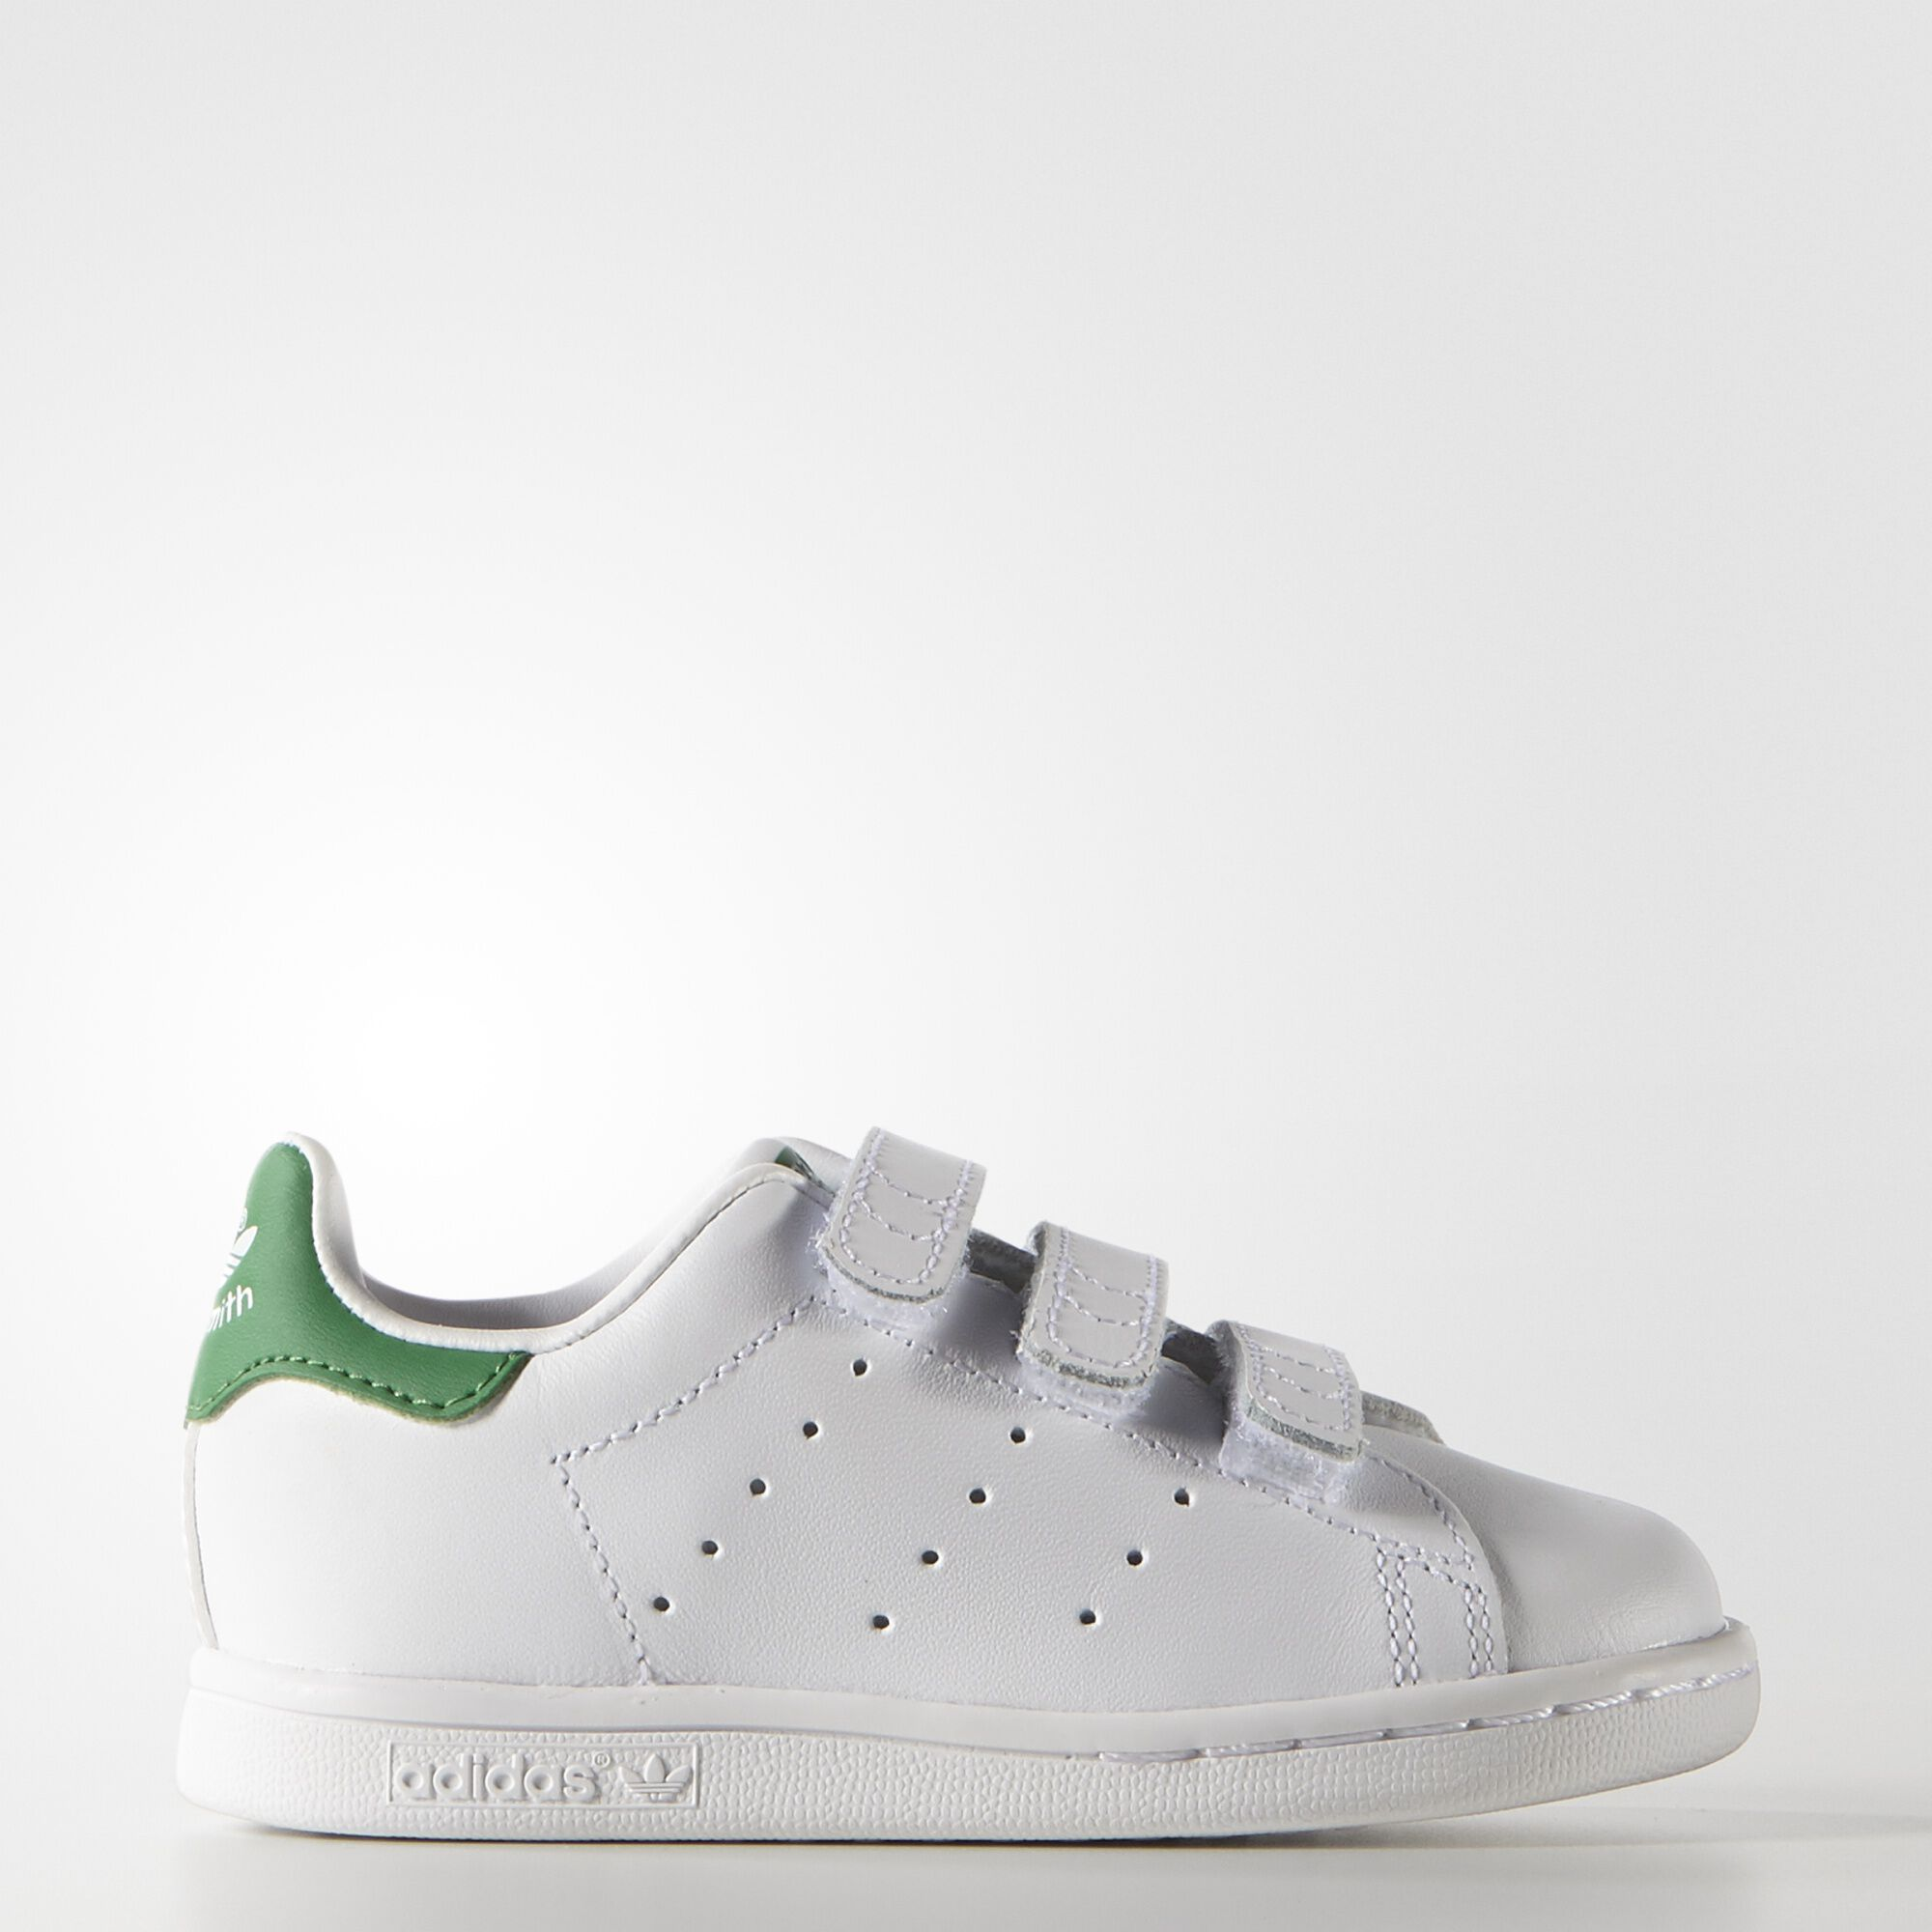 meet 0667e cb1c8 adidas stan smith scratch